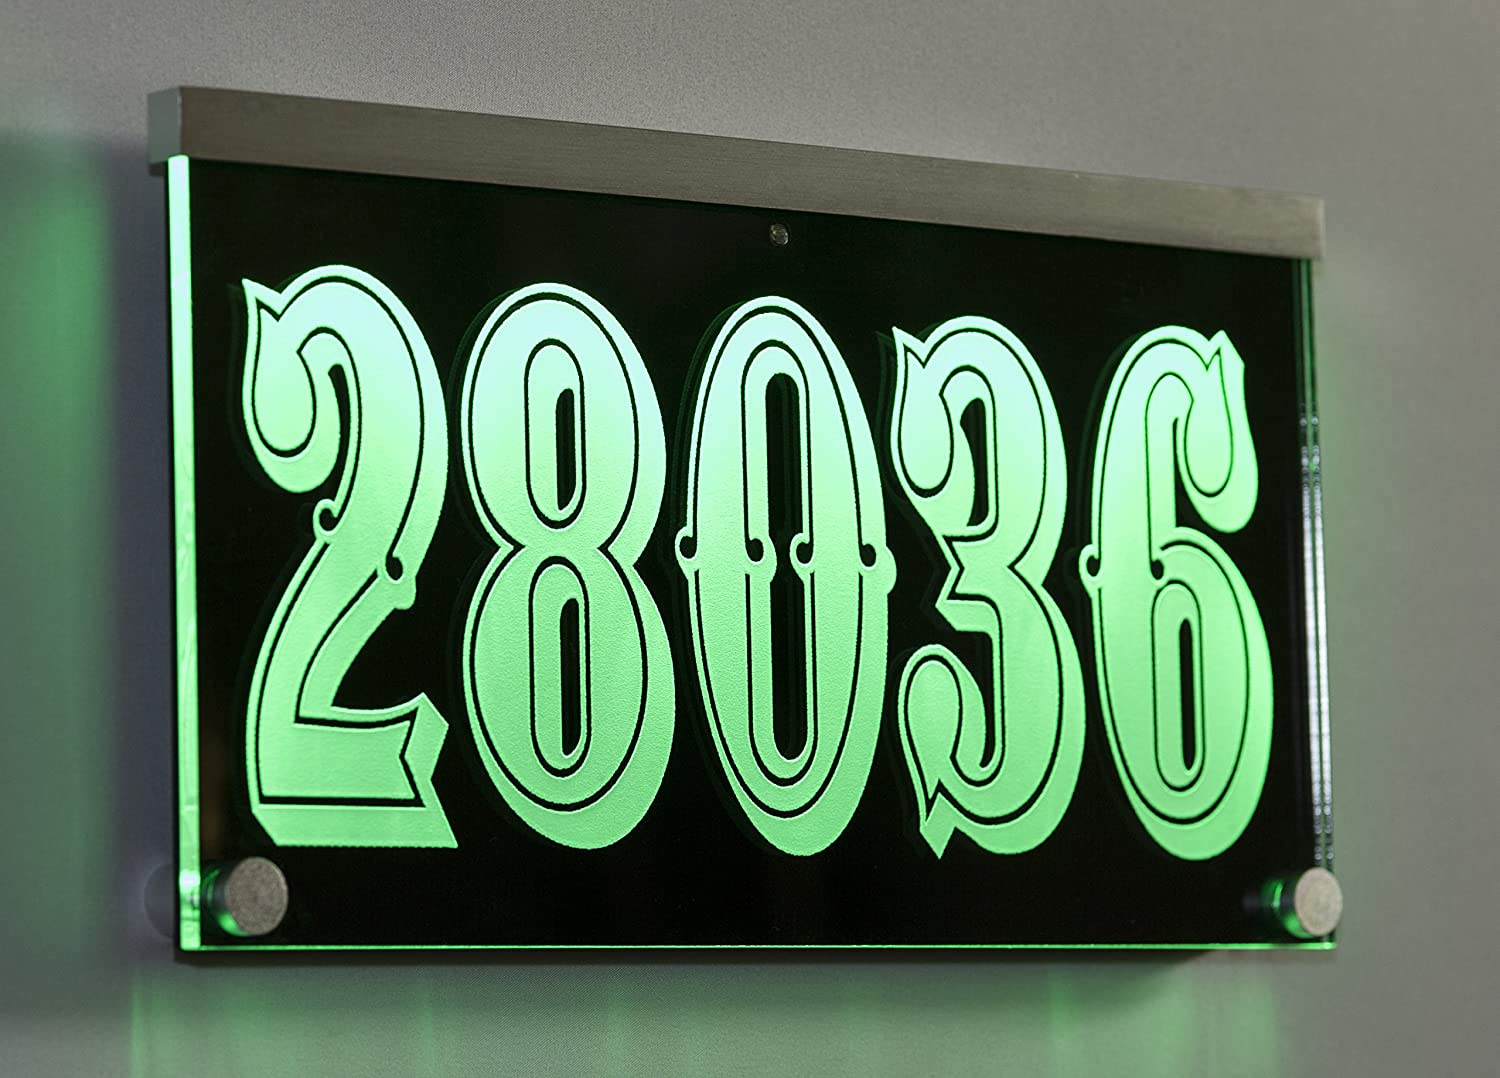 12-16V AC Illuminated Address Sign Plaque House Numbers LED Lighted - Laser Engraved On Acrylic Sign with Remote Control, Auto On/Off Henry Chou